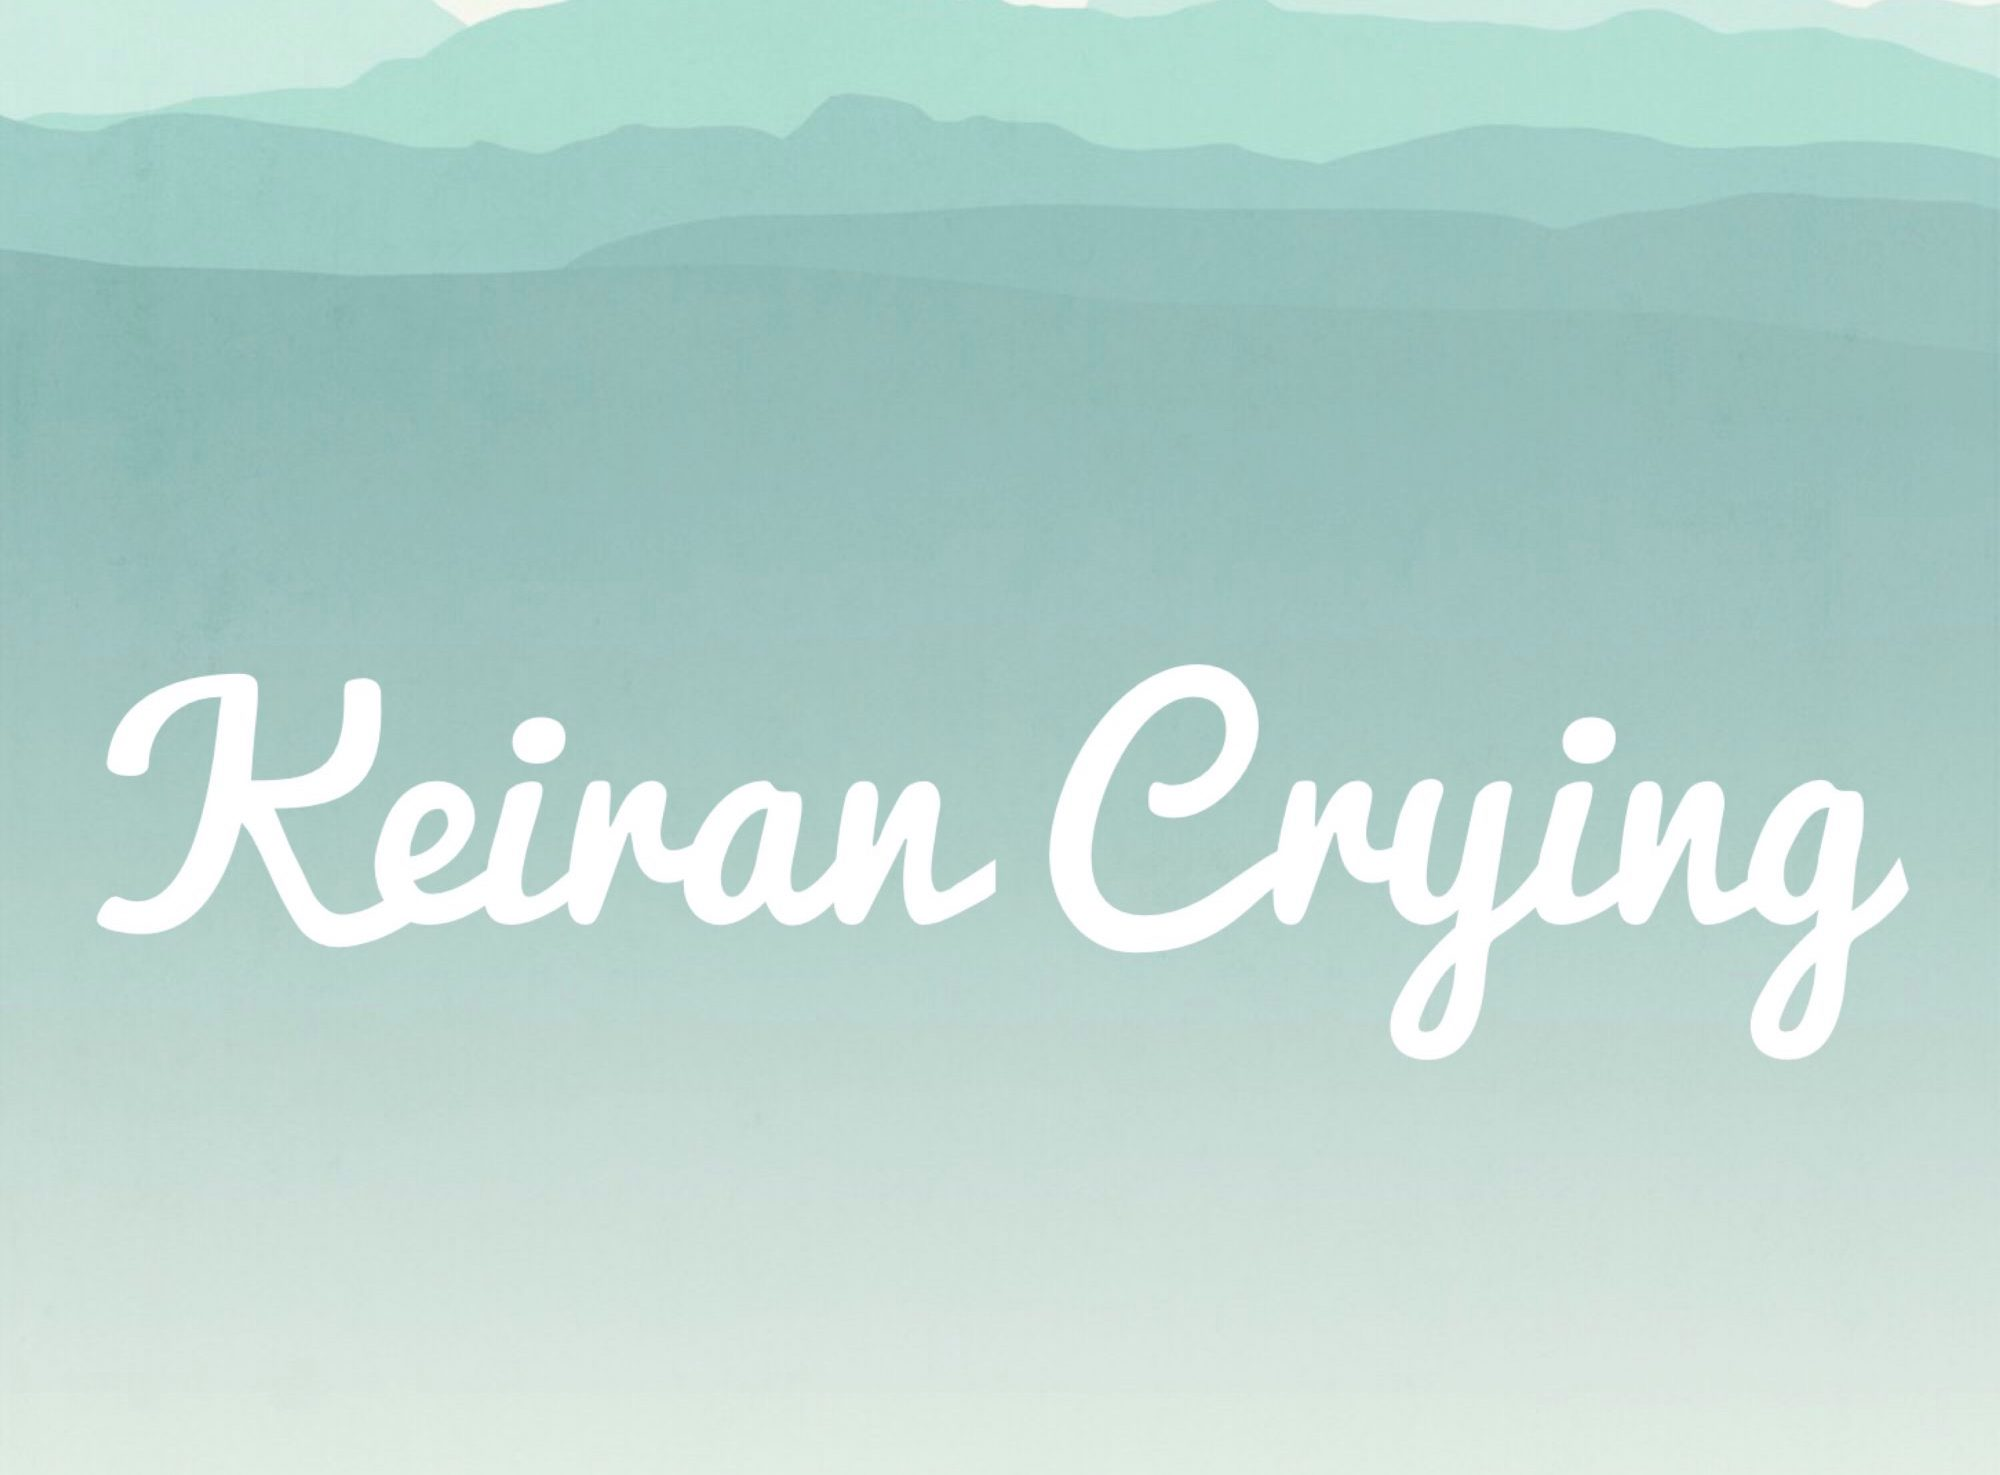 Here is the logo of my website https://KeiranCrying.com/blog , I am always open to collaboration with local businesses. Whether that be to create content or promote on my blog